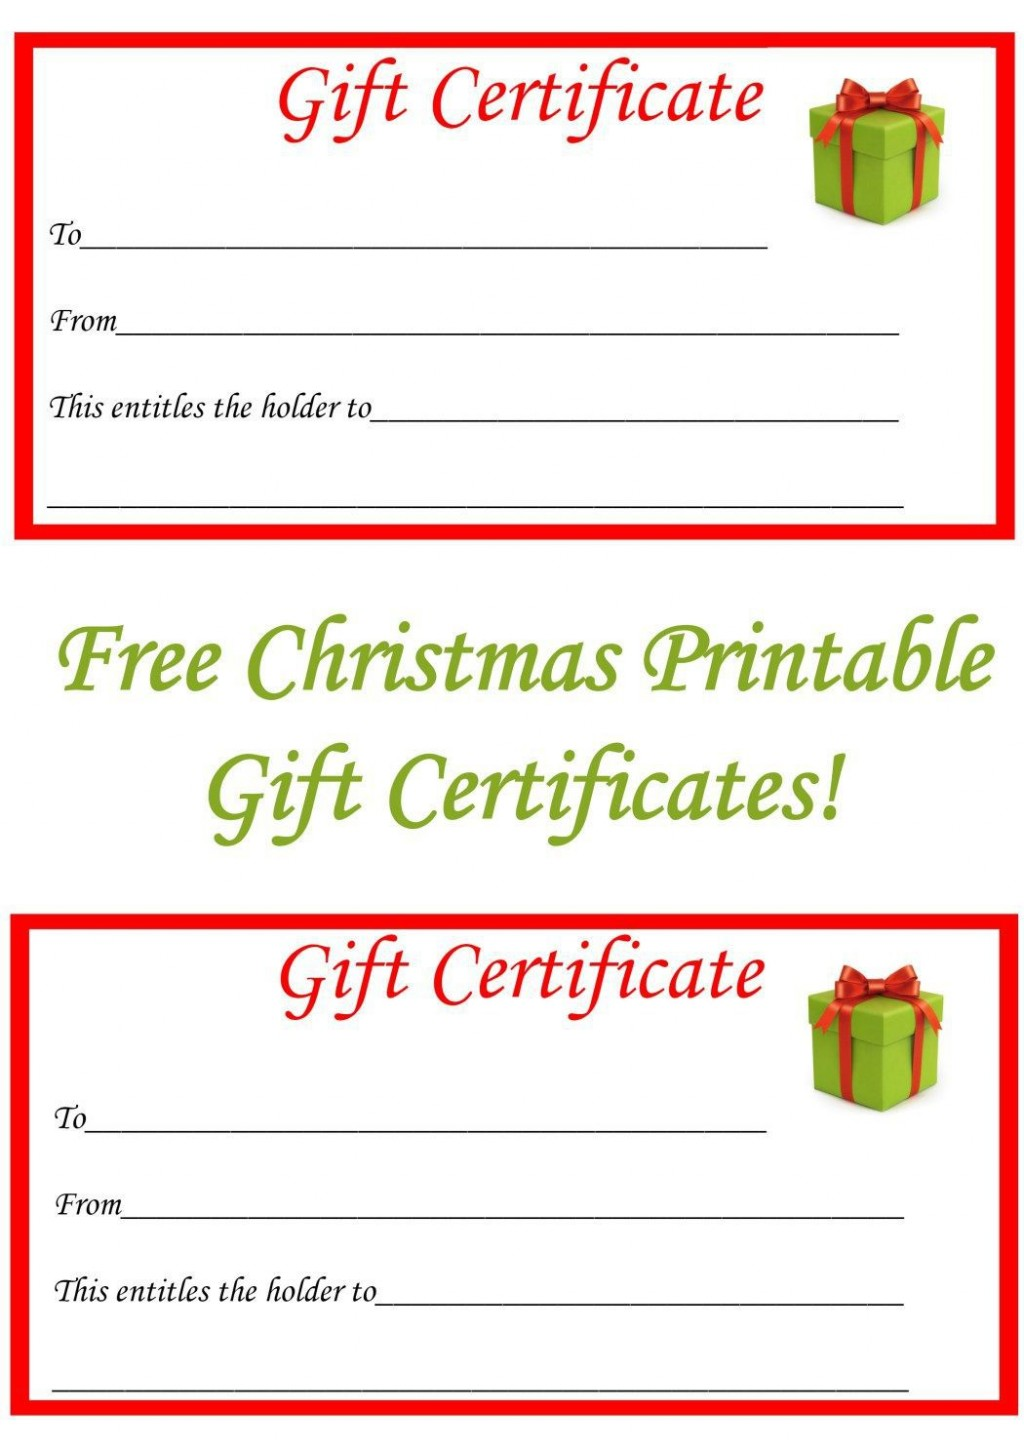 004 Dreaded Template For Christma Gift Certificate Free High Resolution  Voucher Uk Editable Download Microsoft WordLarge